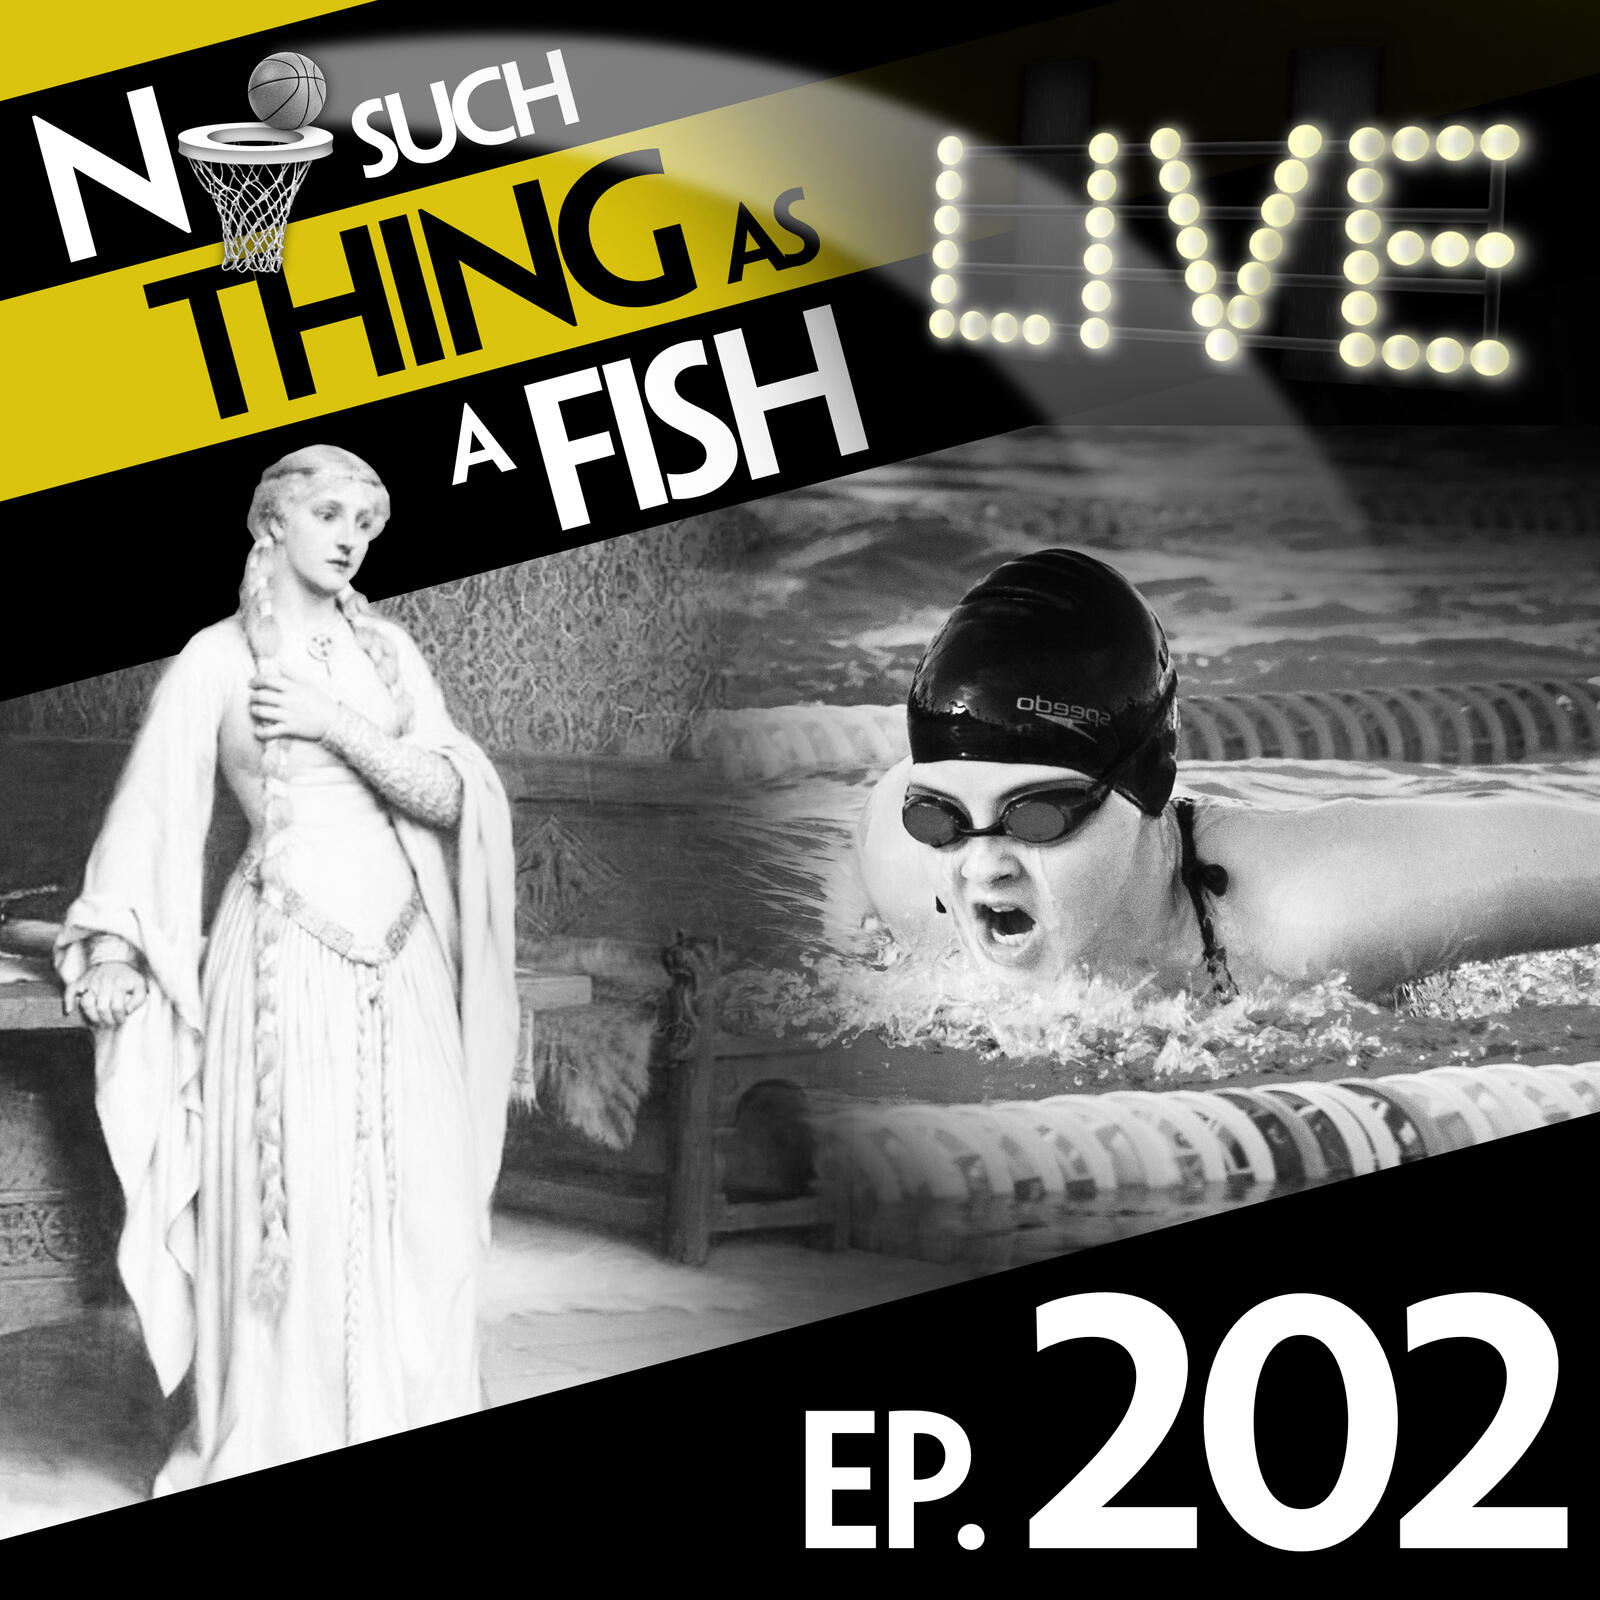 Episode 202: No Such Thing As A Deadly Birthday Cake